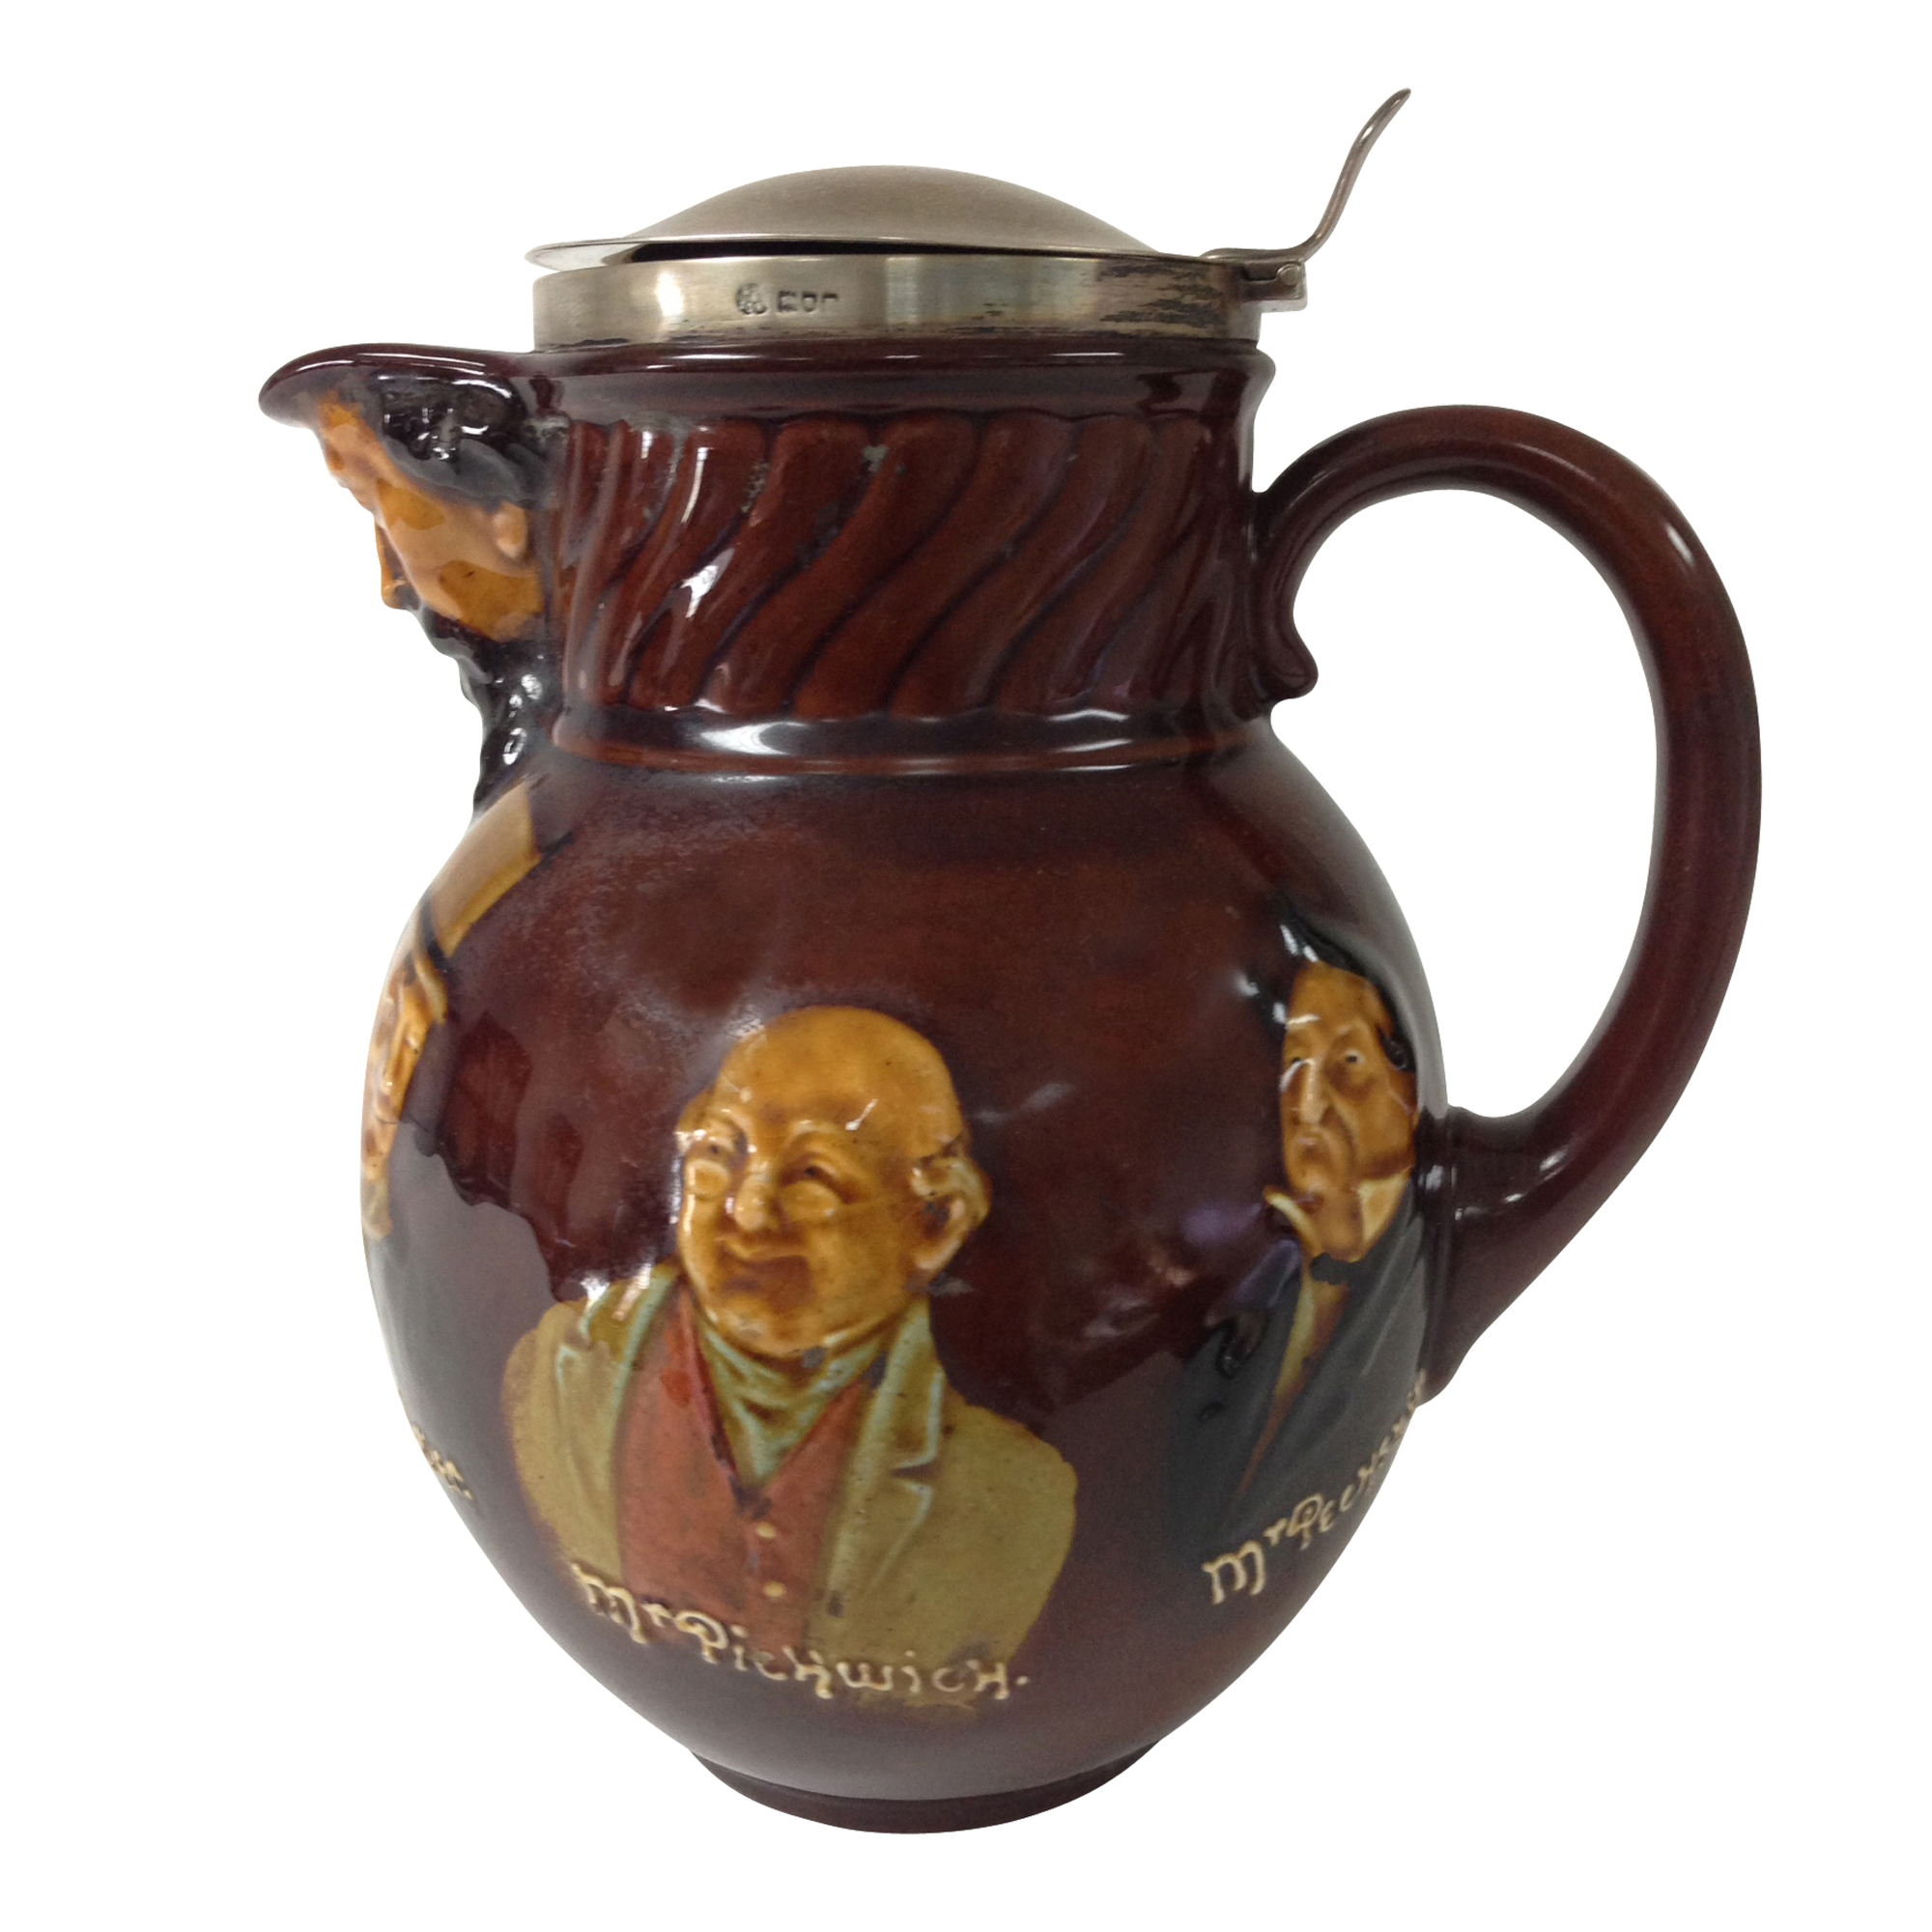 Kingsware Dickens Pitcher with Silver Hinged Lid - Royal Doulton Kingsware